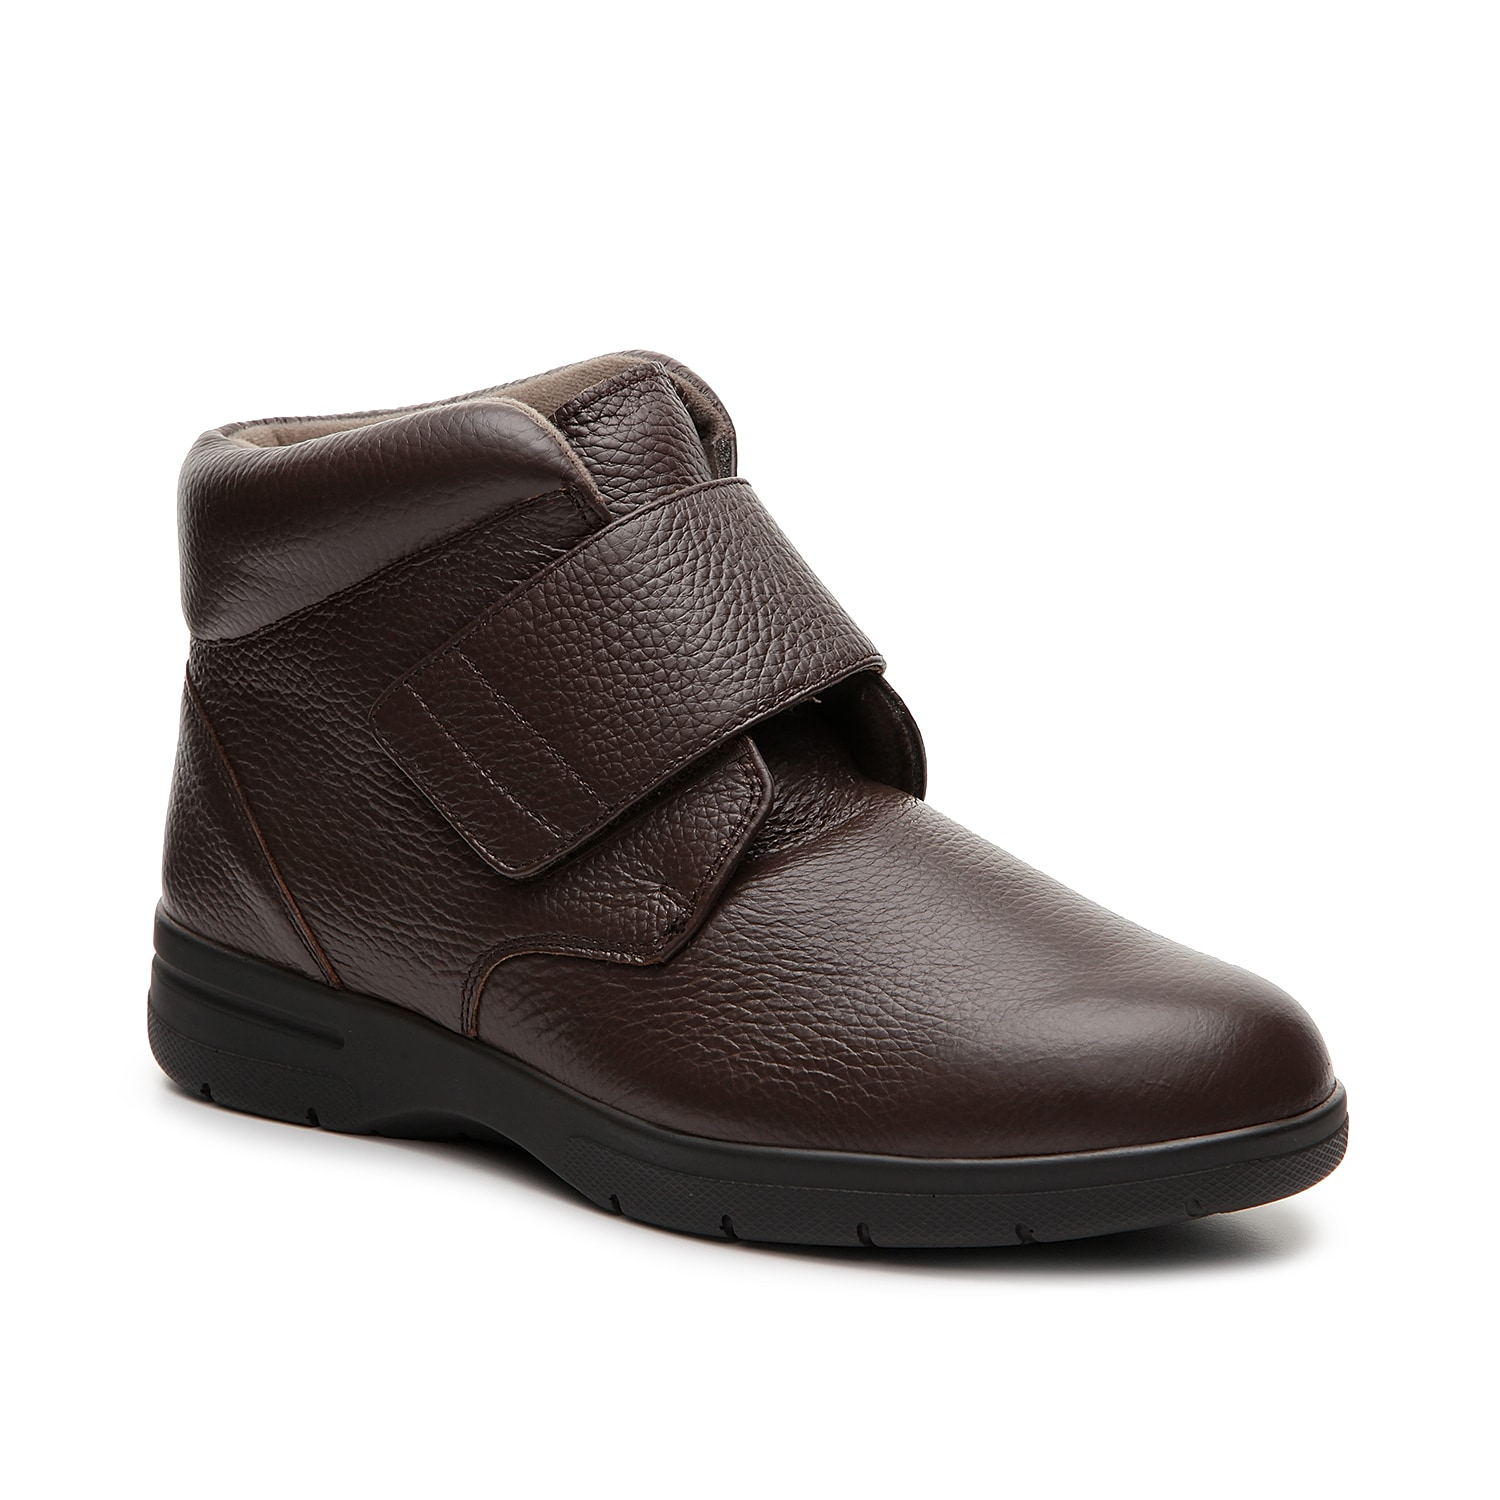 Feel at ease while wearing the Big Easy boot from Drew. The hook and loop strap closure provides a custom fit while the padded collar offers ankle support.